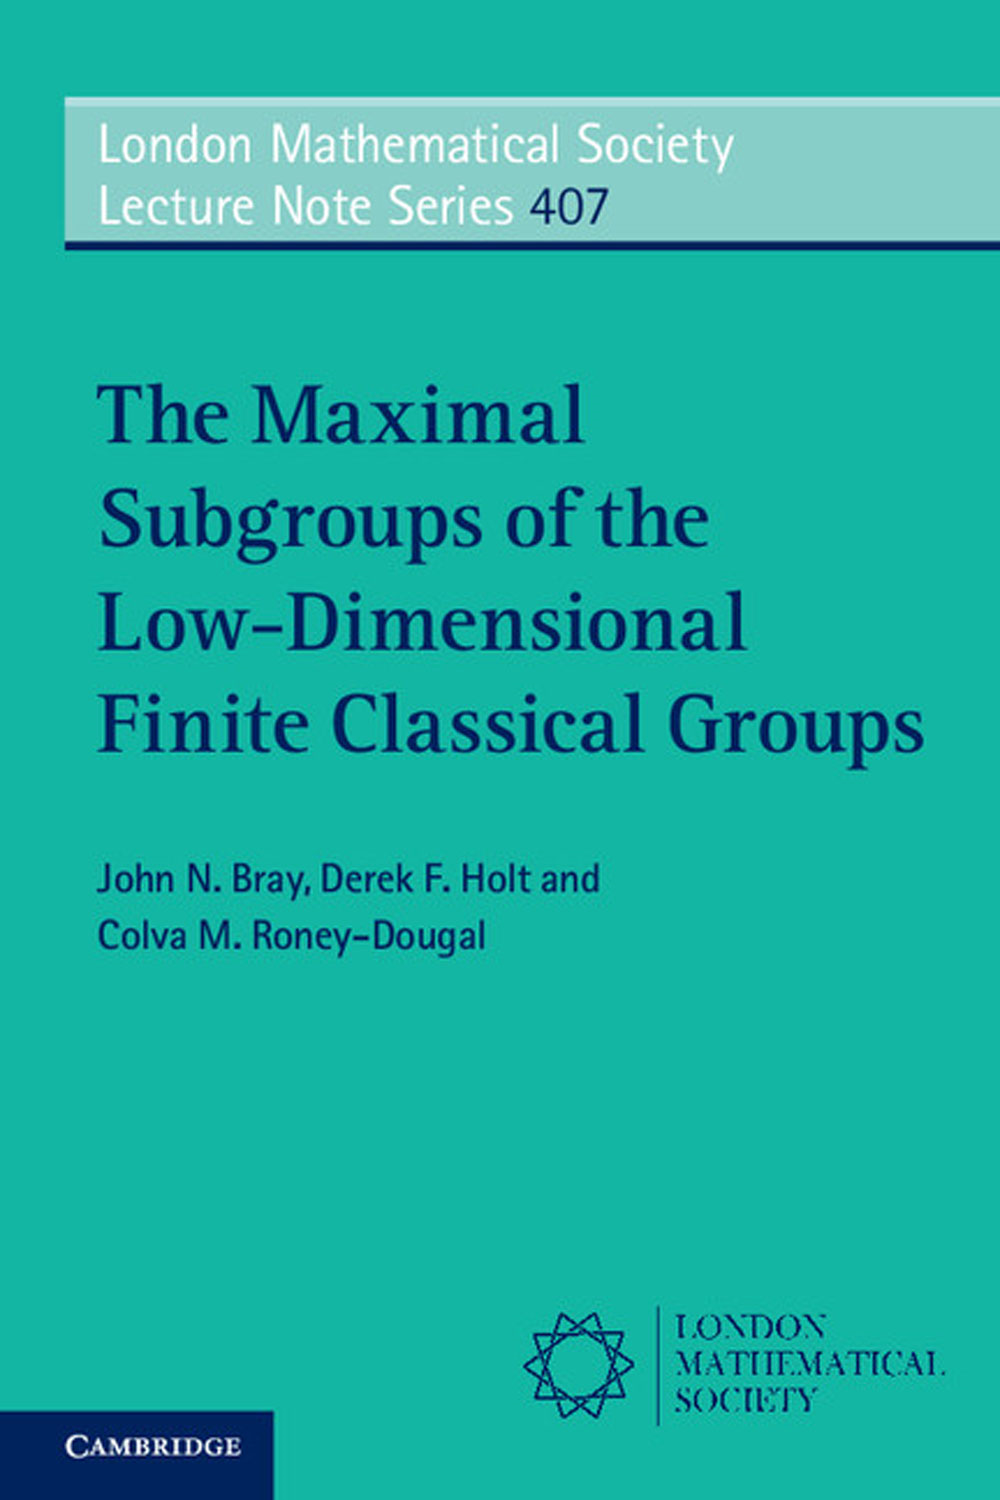 The Maximal Subgroups of the Low-Dimensional Finite Classical Groups